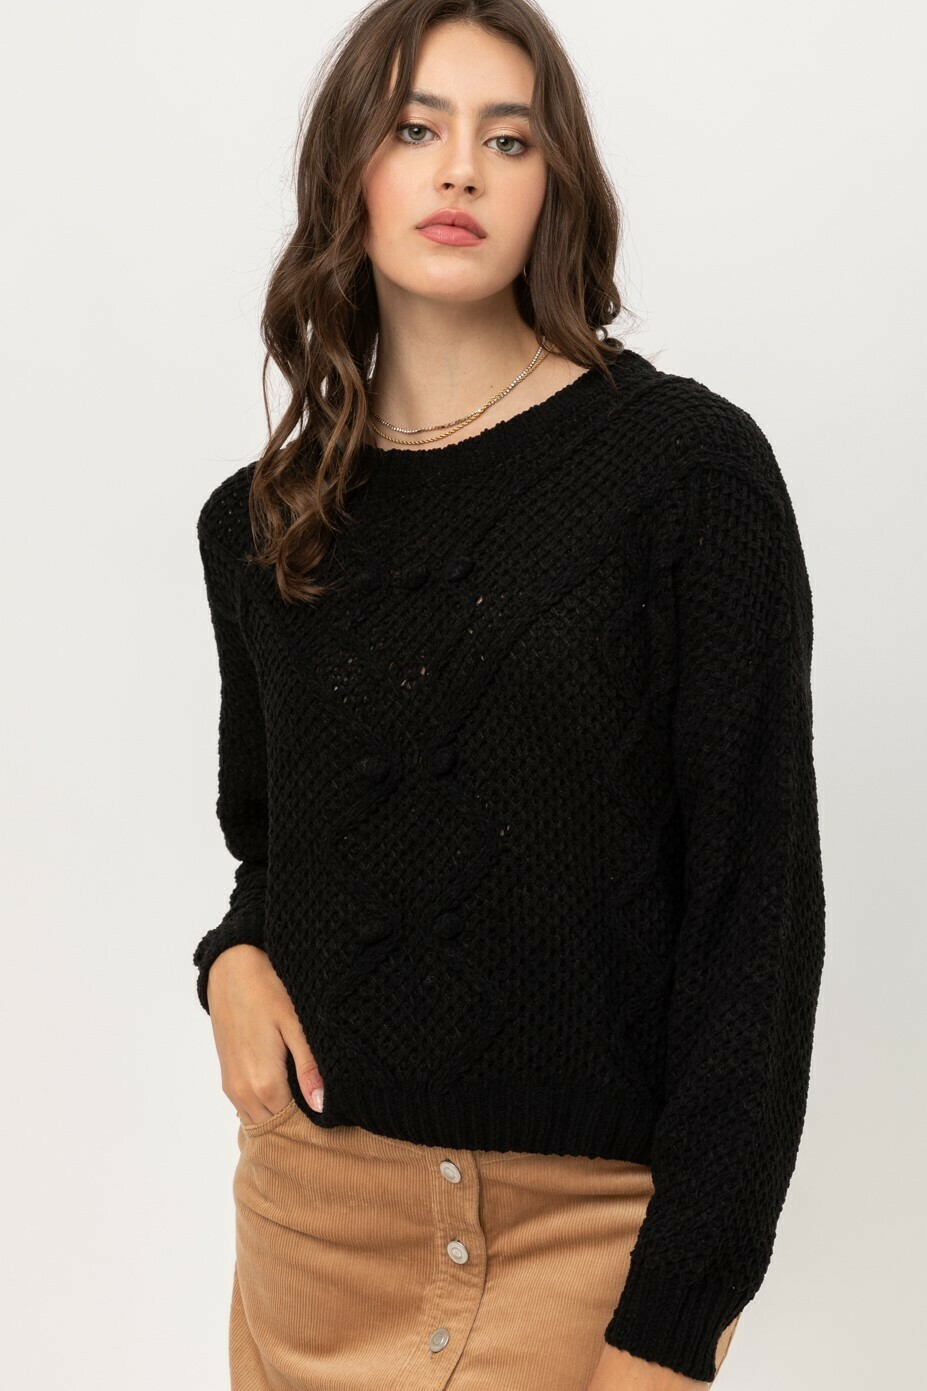 BLACK CHENILLE DETAIL FRONT SWEATER TOP